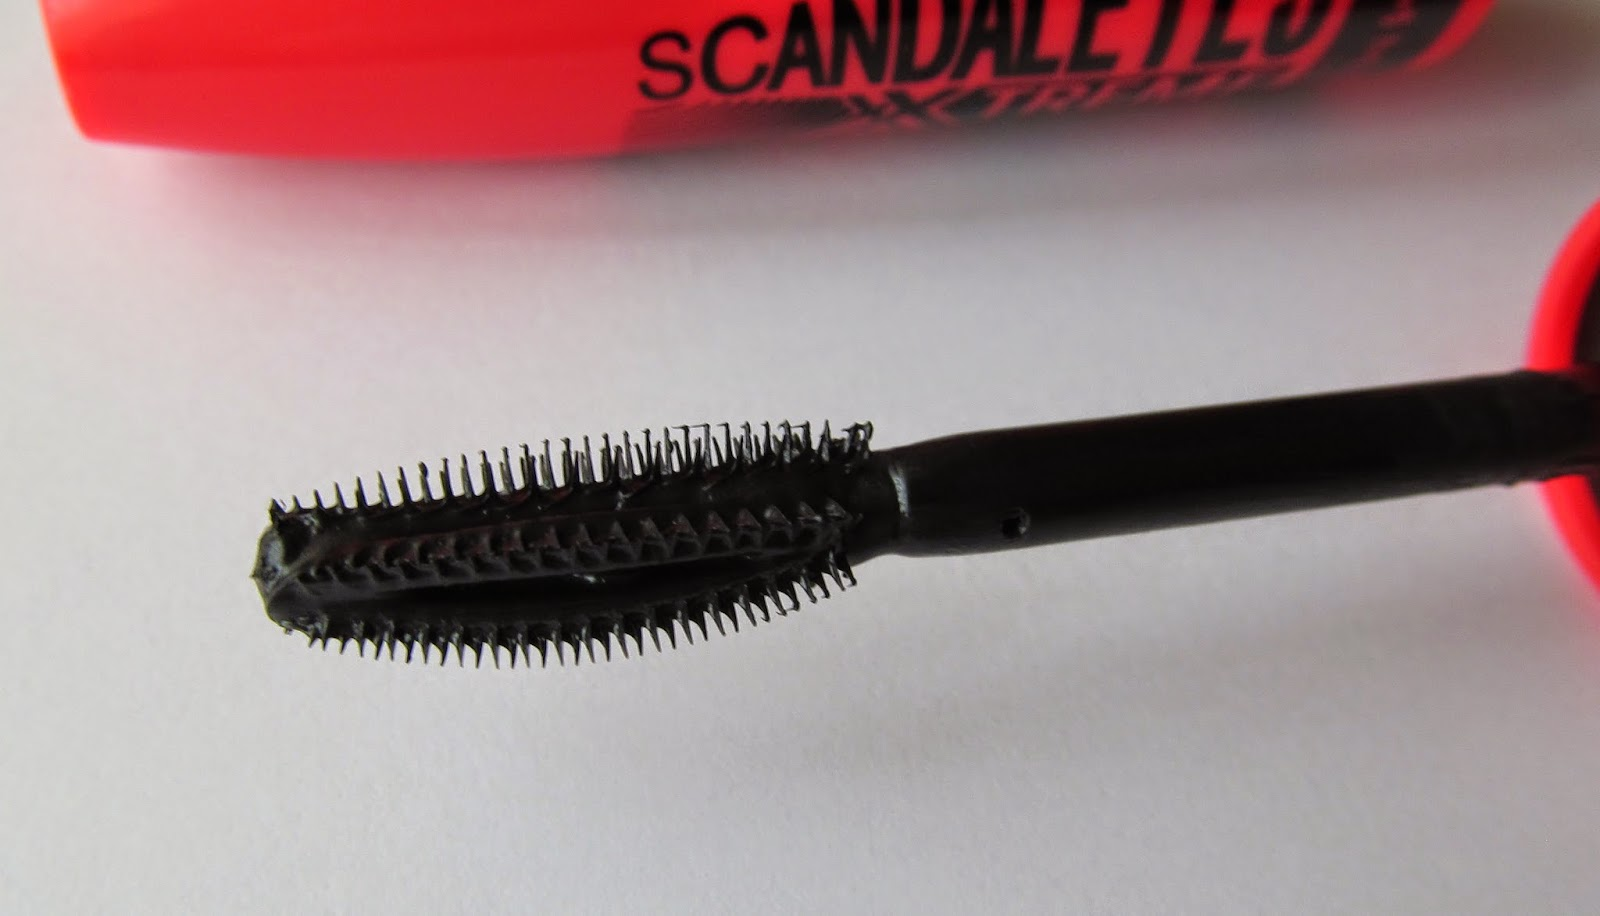 scandaleyes rimmel review